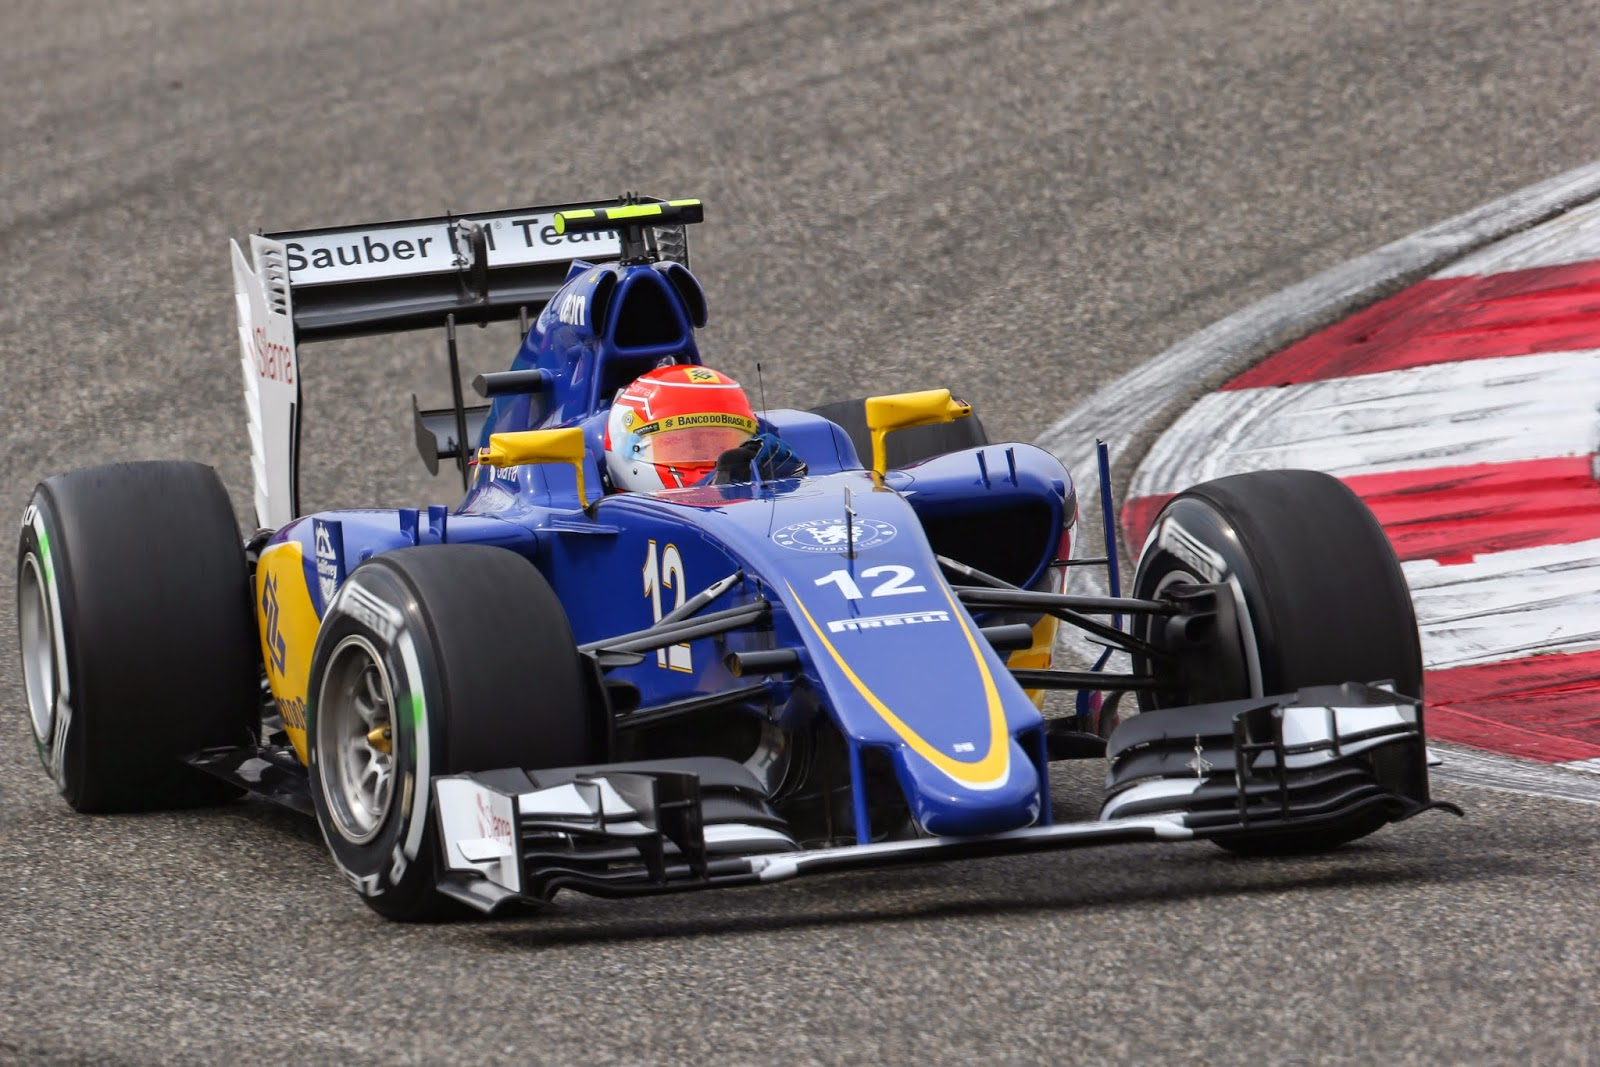 itc racing sauber f1 team 2015 chinese grand prix fp3 qualifying review saturday 11 april. Black Bedroom Furniture Sets. Home Design Ideas